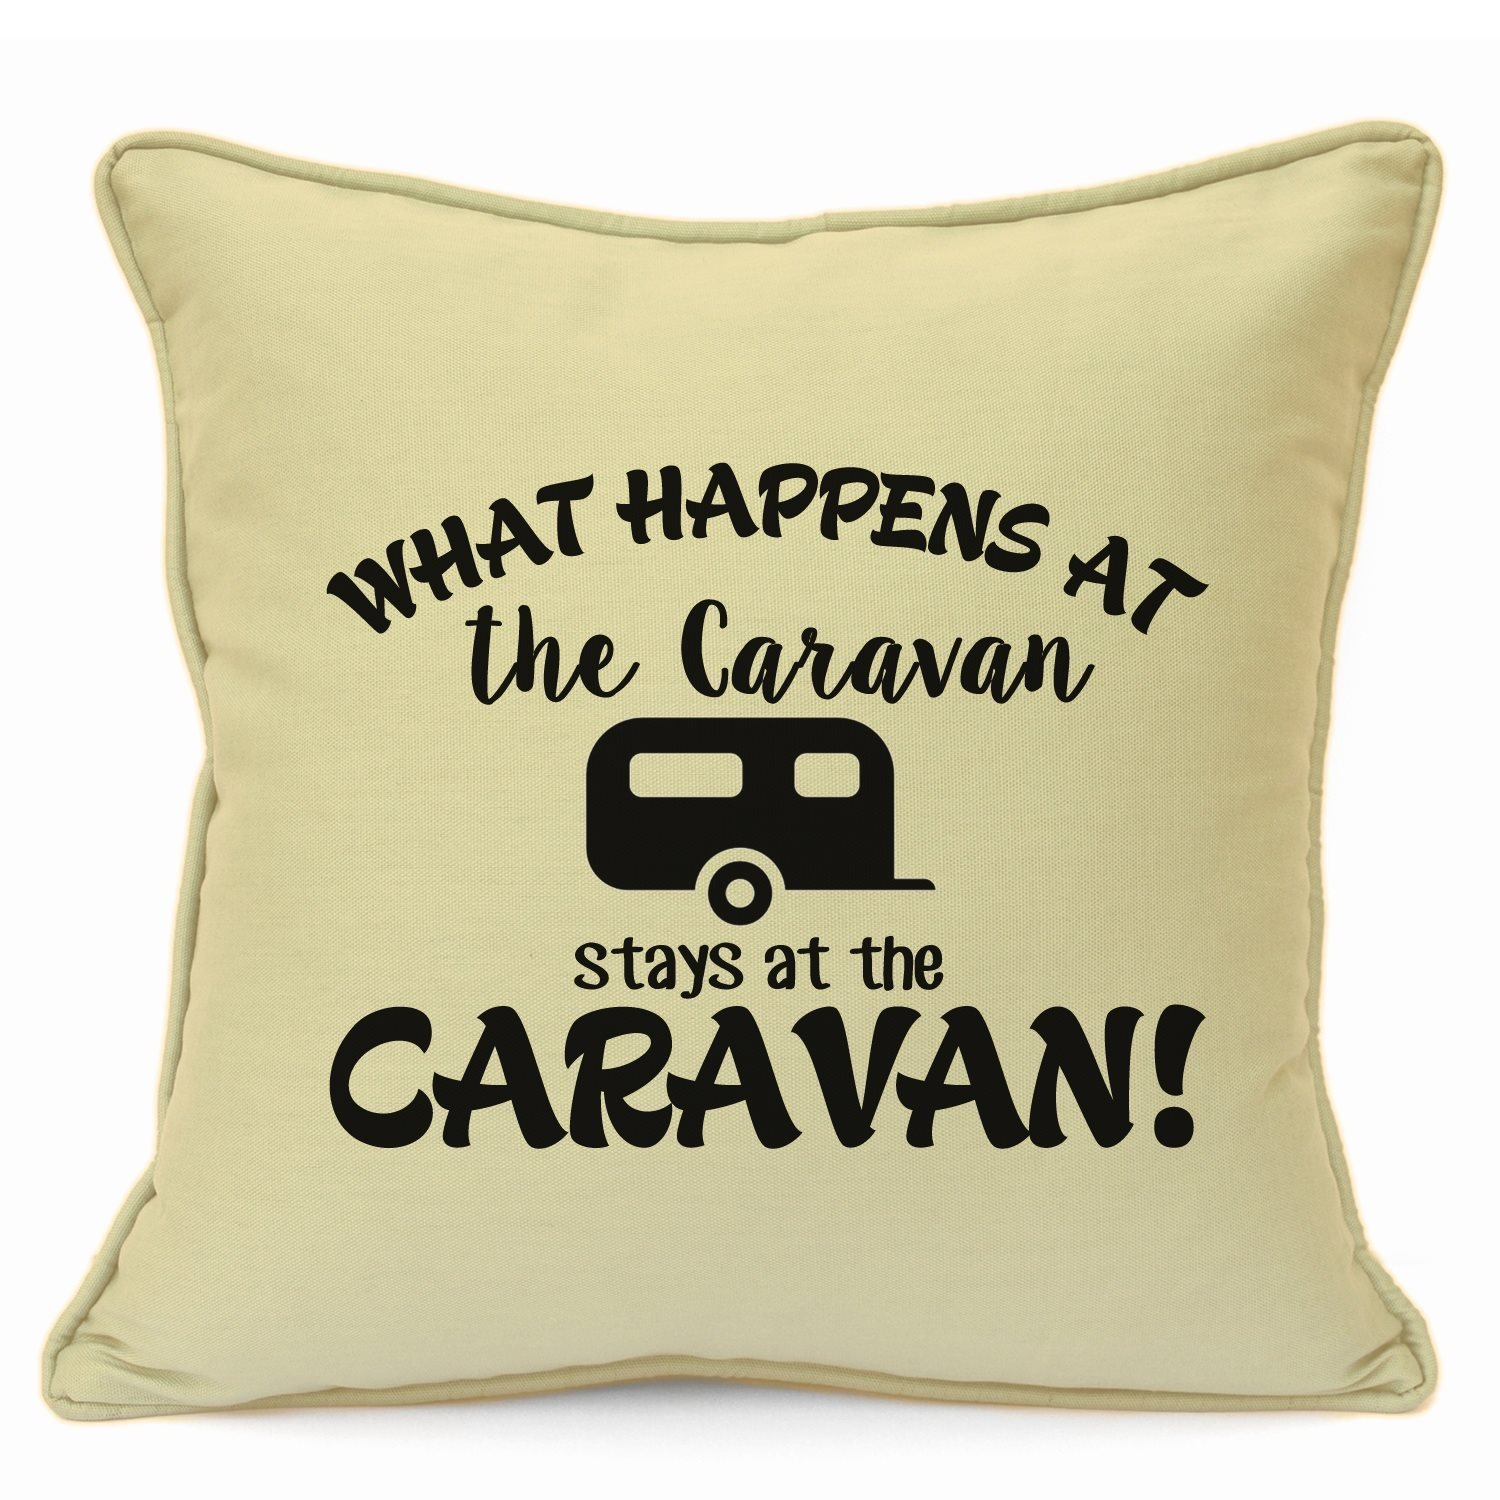 Presents Gifts For Caravan Owners Lovers Friends Family Holiday Gifts Novelty Funny What Happens At The Caravan Cushion Cover 18 Inch 45 Cm Special Unique Idea